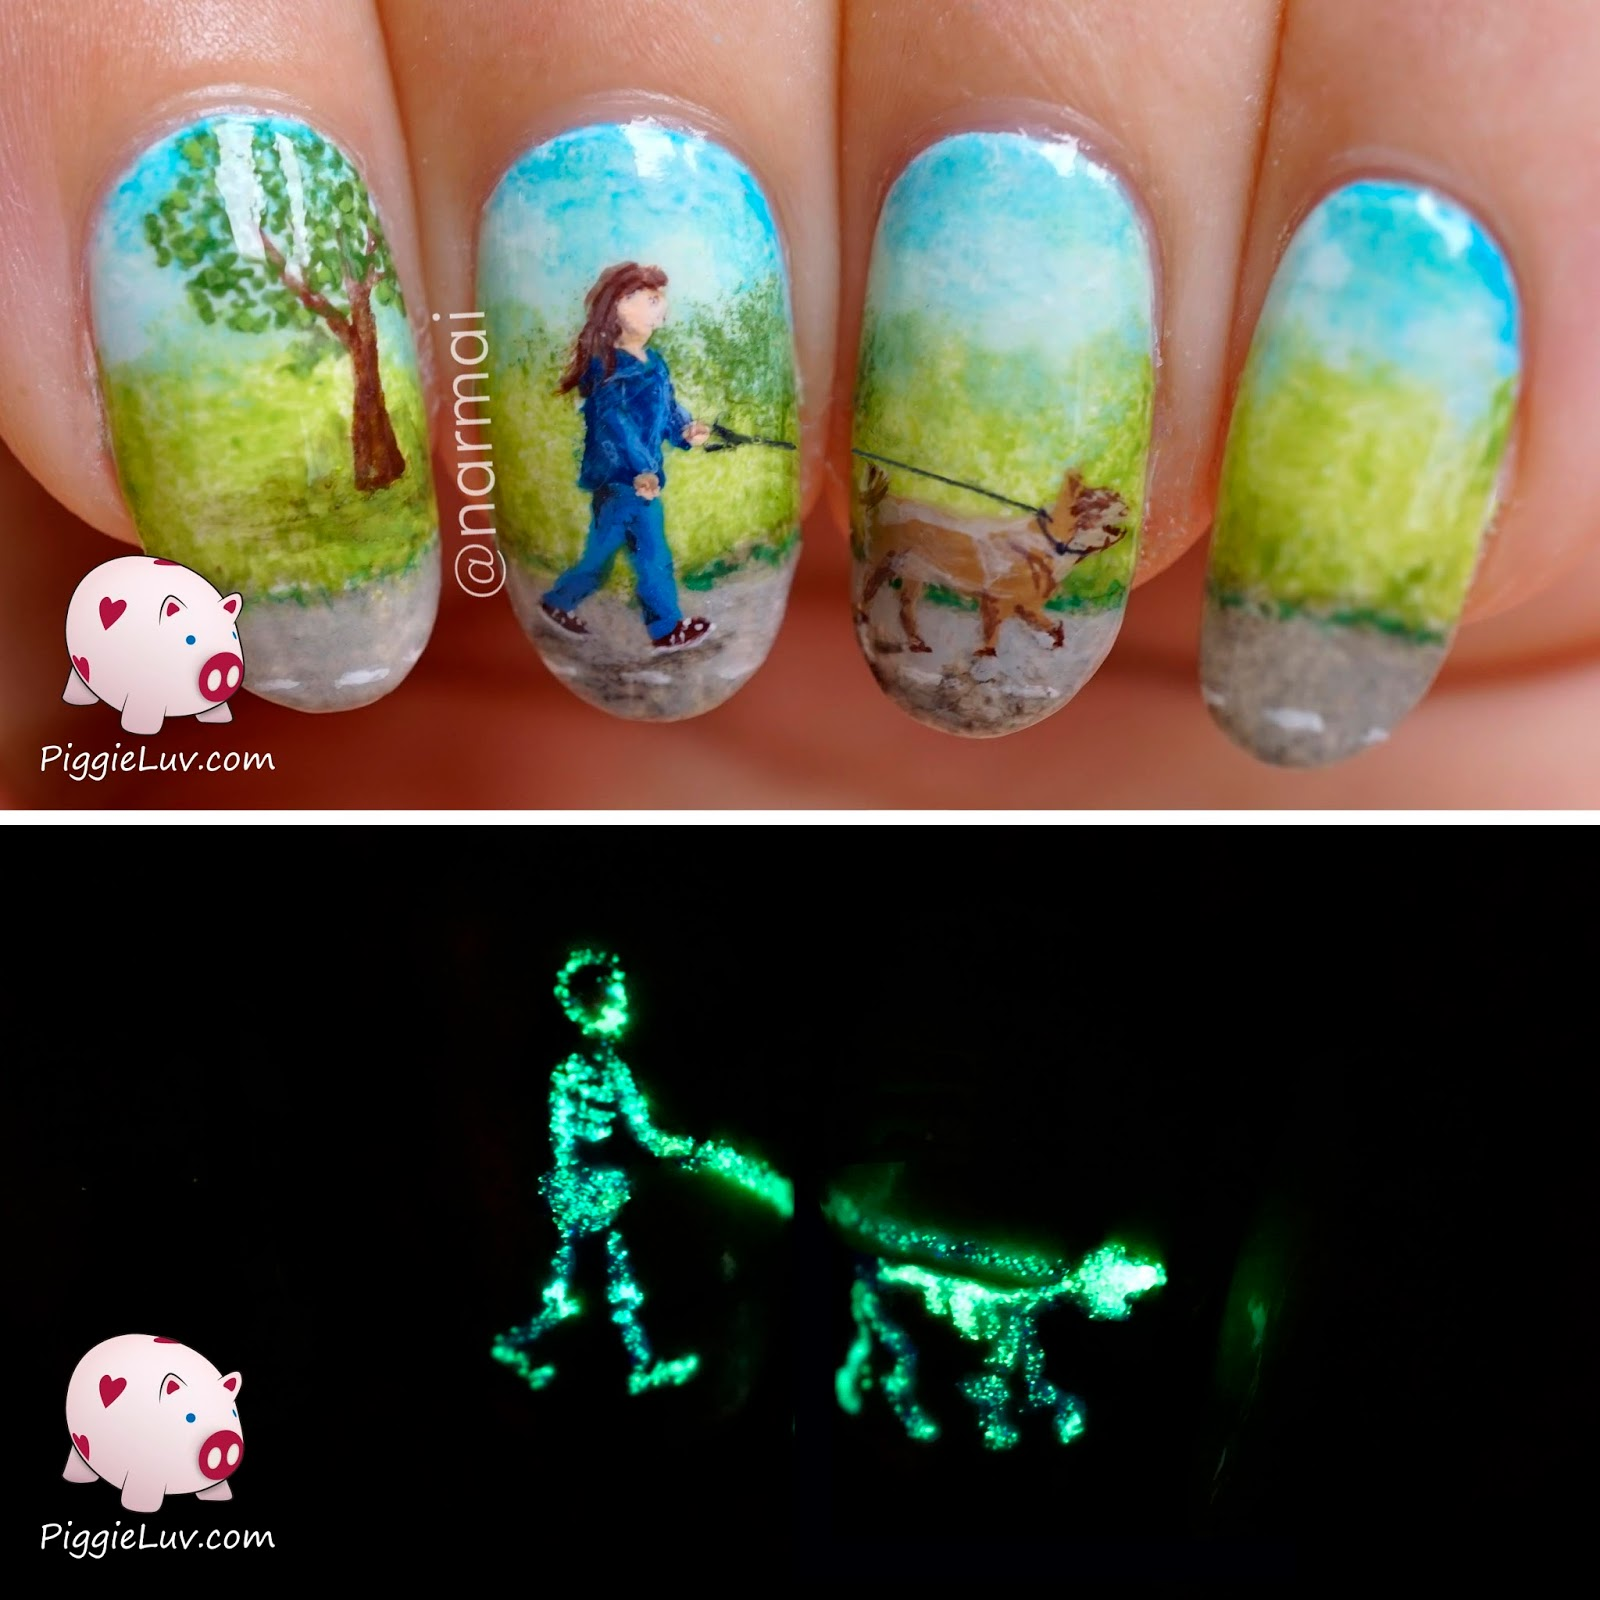 Piggieluv X Ray Nail Art Glow In The Dark